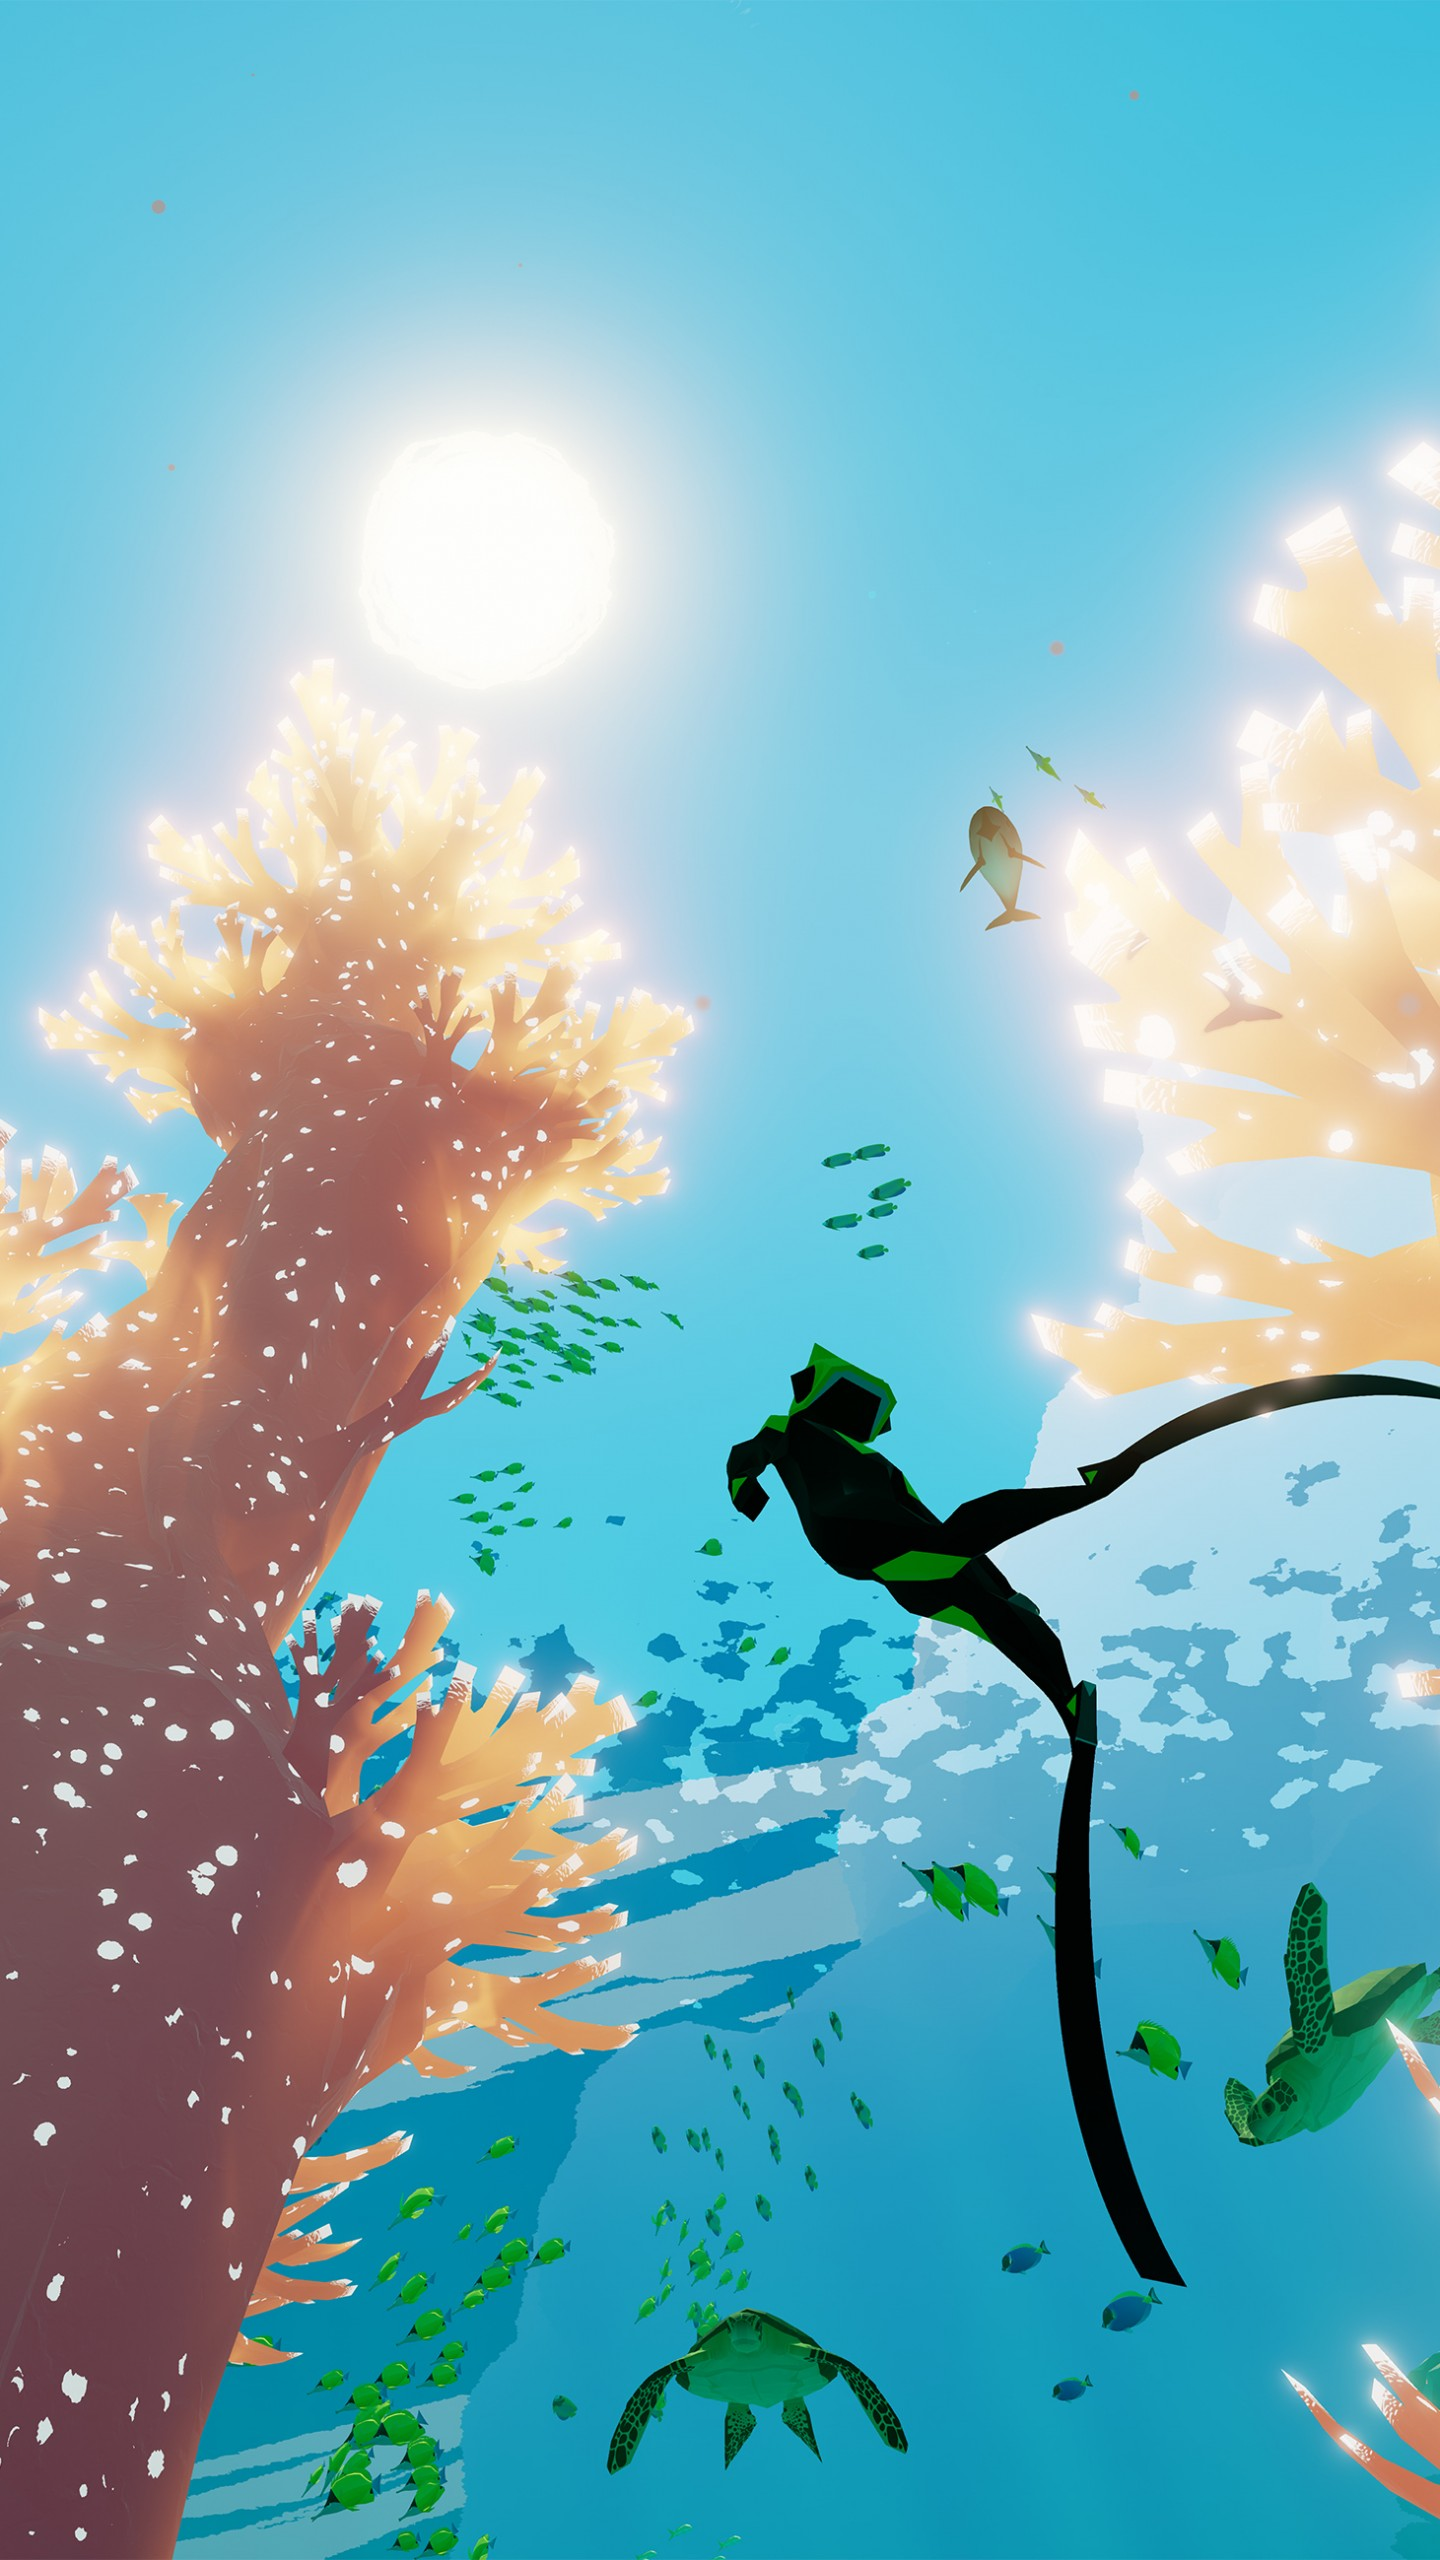 Wallpaper Abzu Gamescom 2016 Underwater Best Games Pc